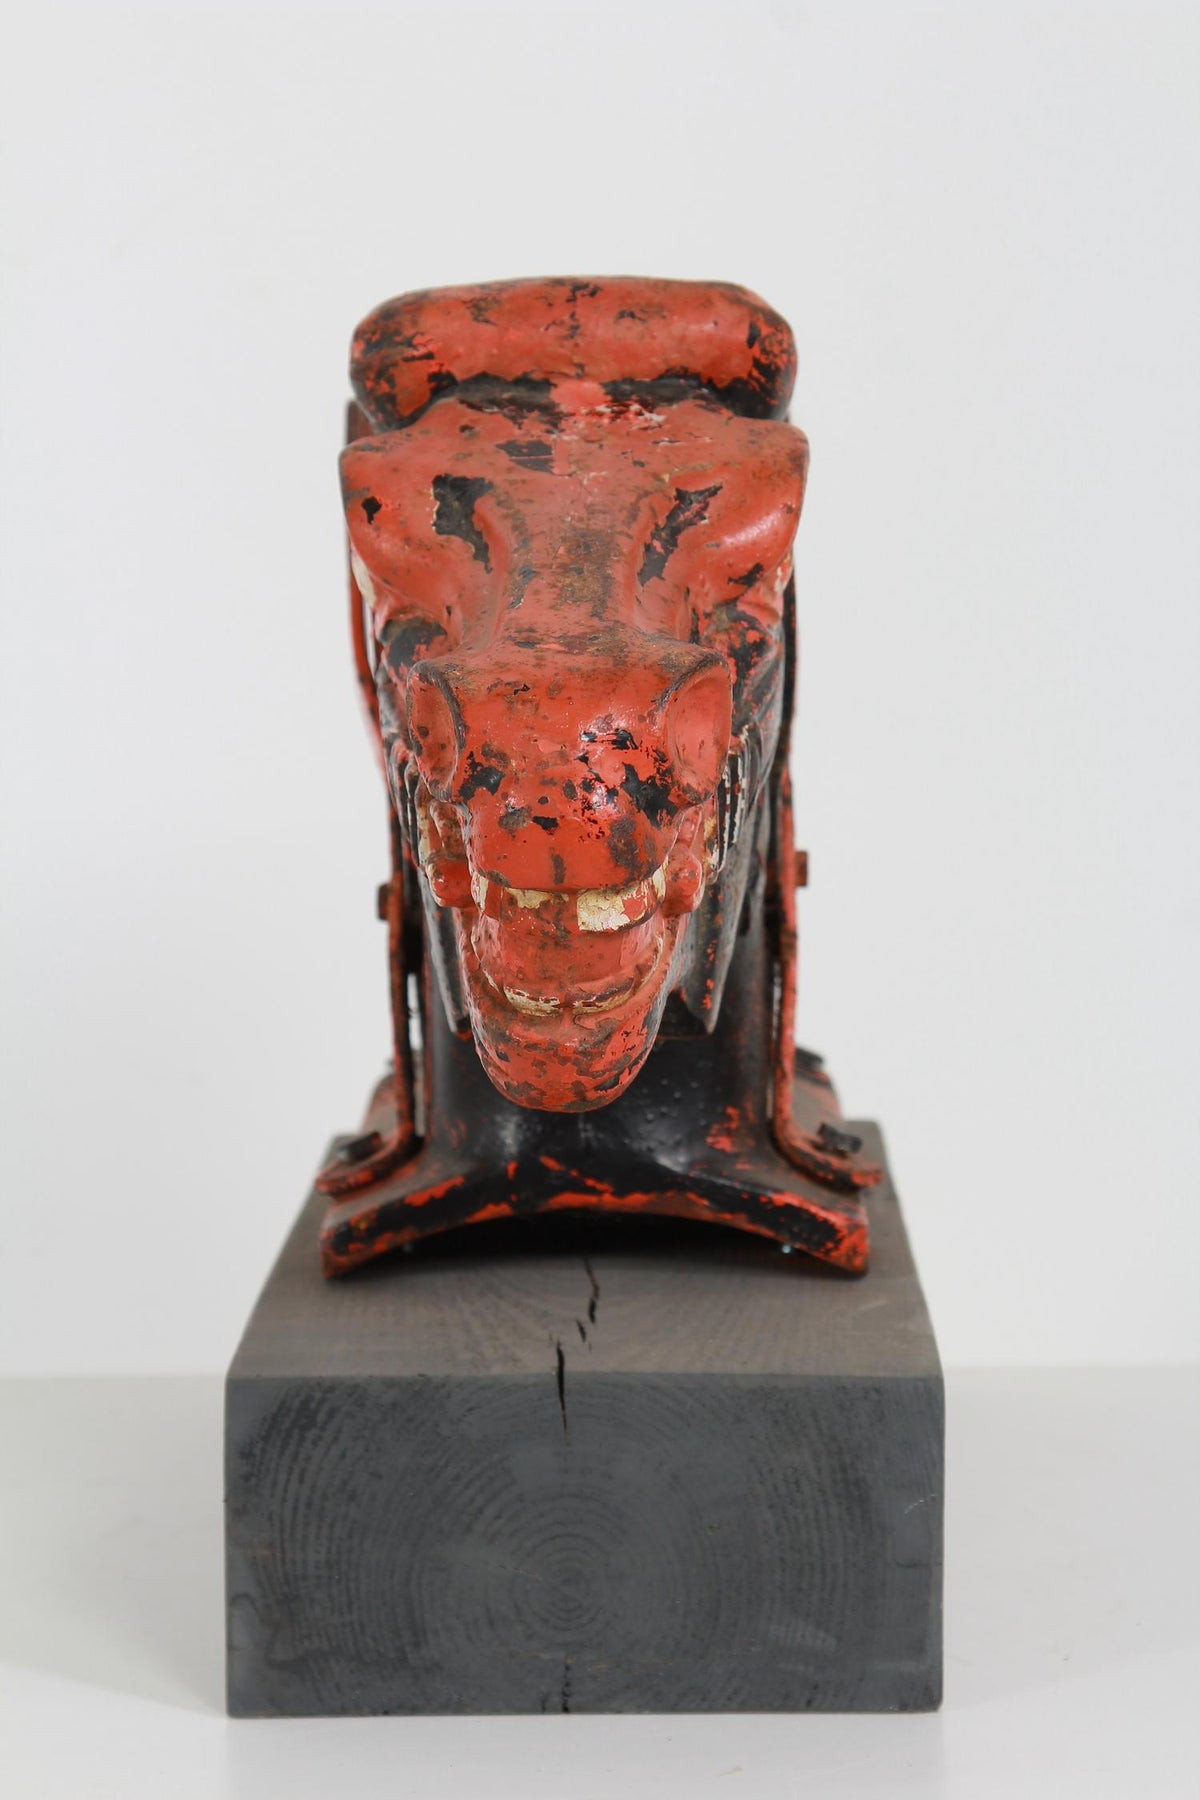 EXCEPTIONAL ARCHITECTURAL CAST IRON RED HORSES HEAD